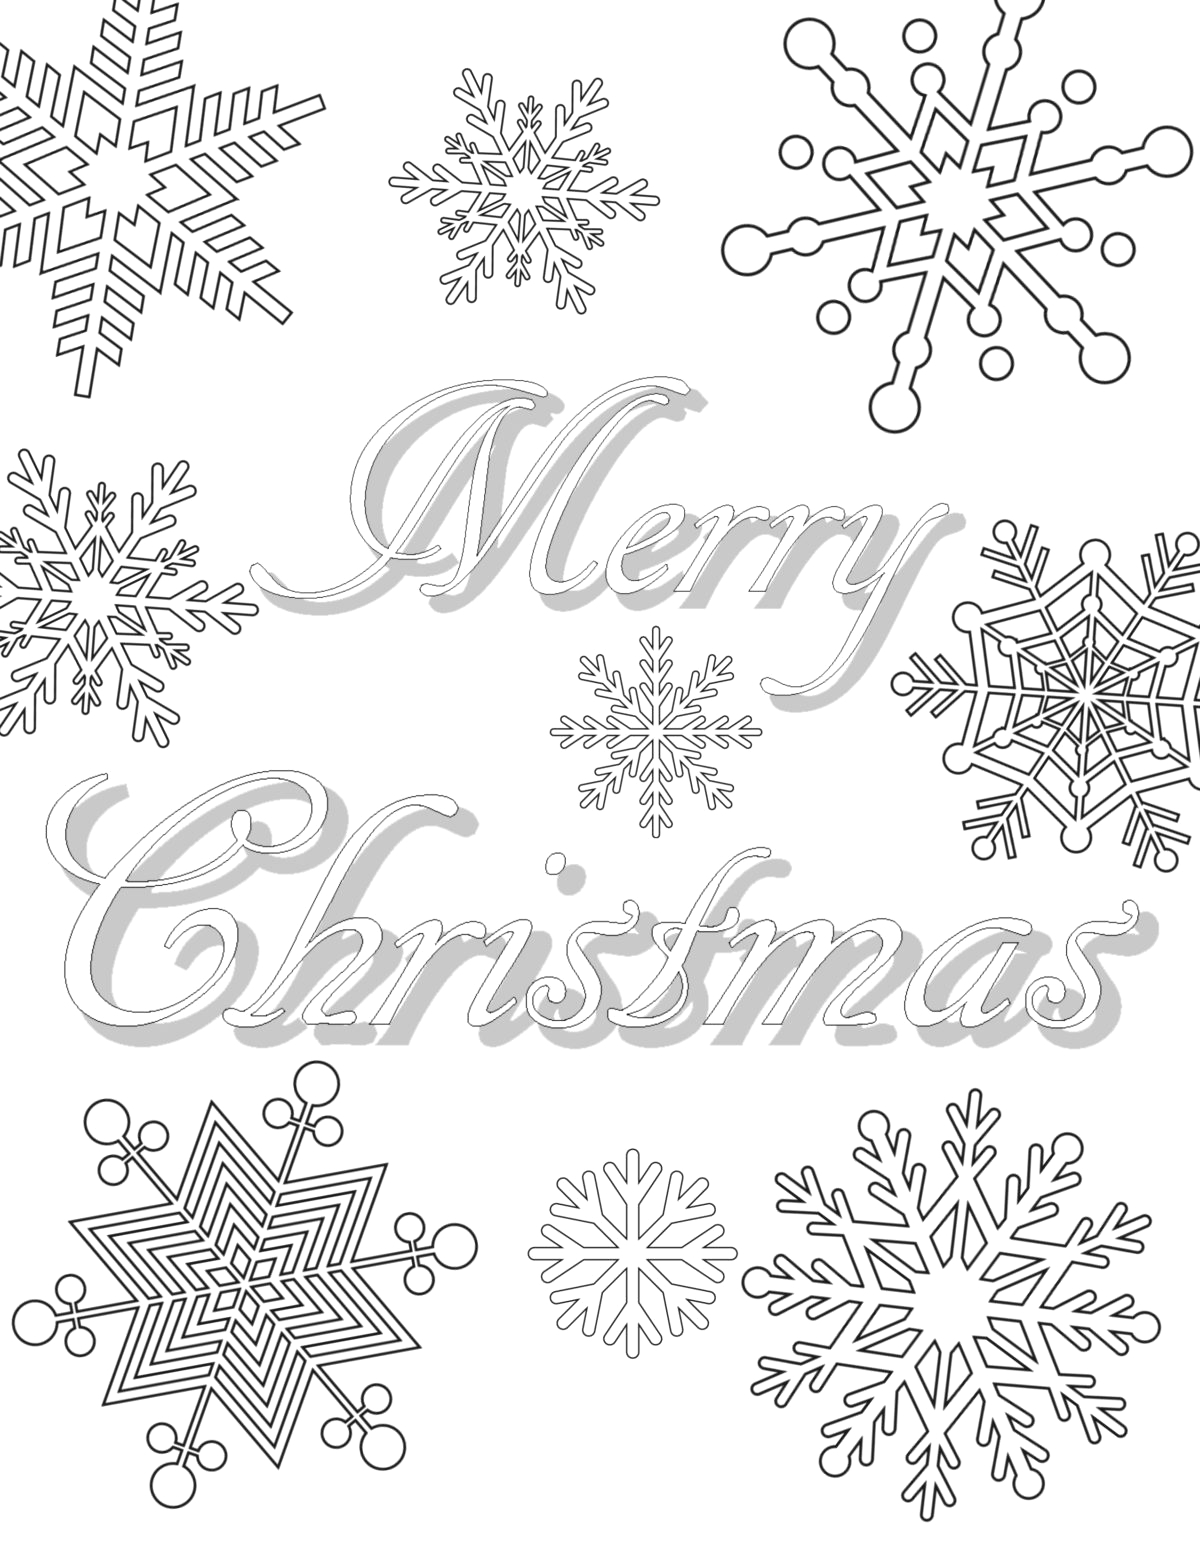 Free Online Christmas Coloring Pages for Adults Free Printable Christmas Coloring Pages for Adults